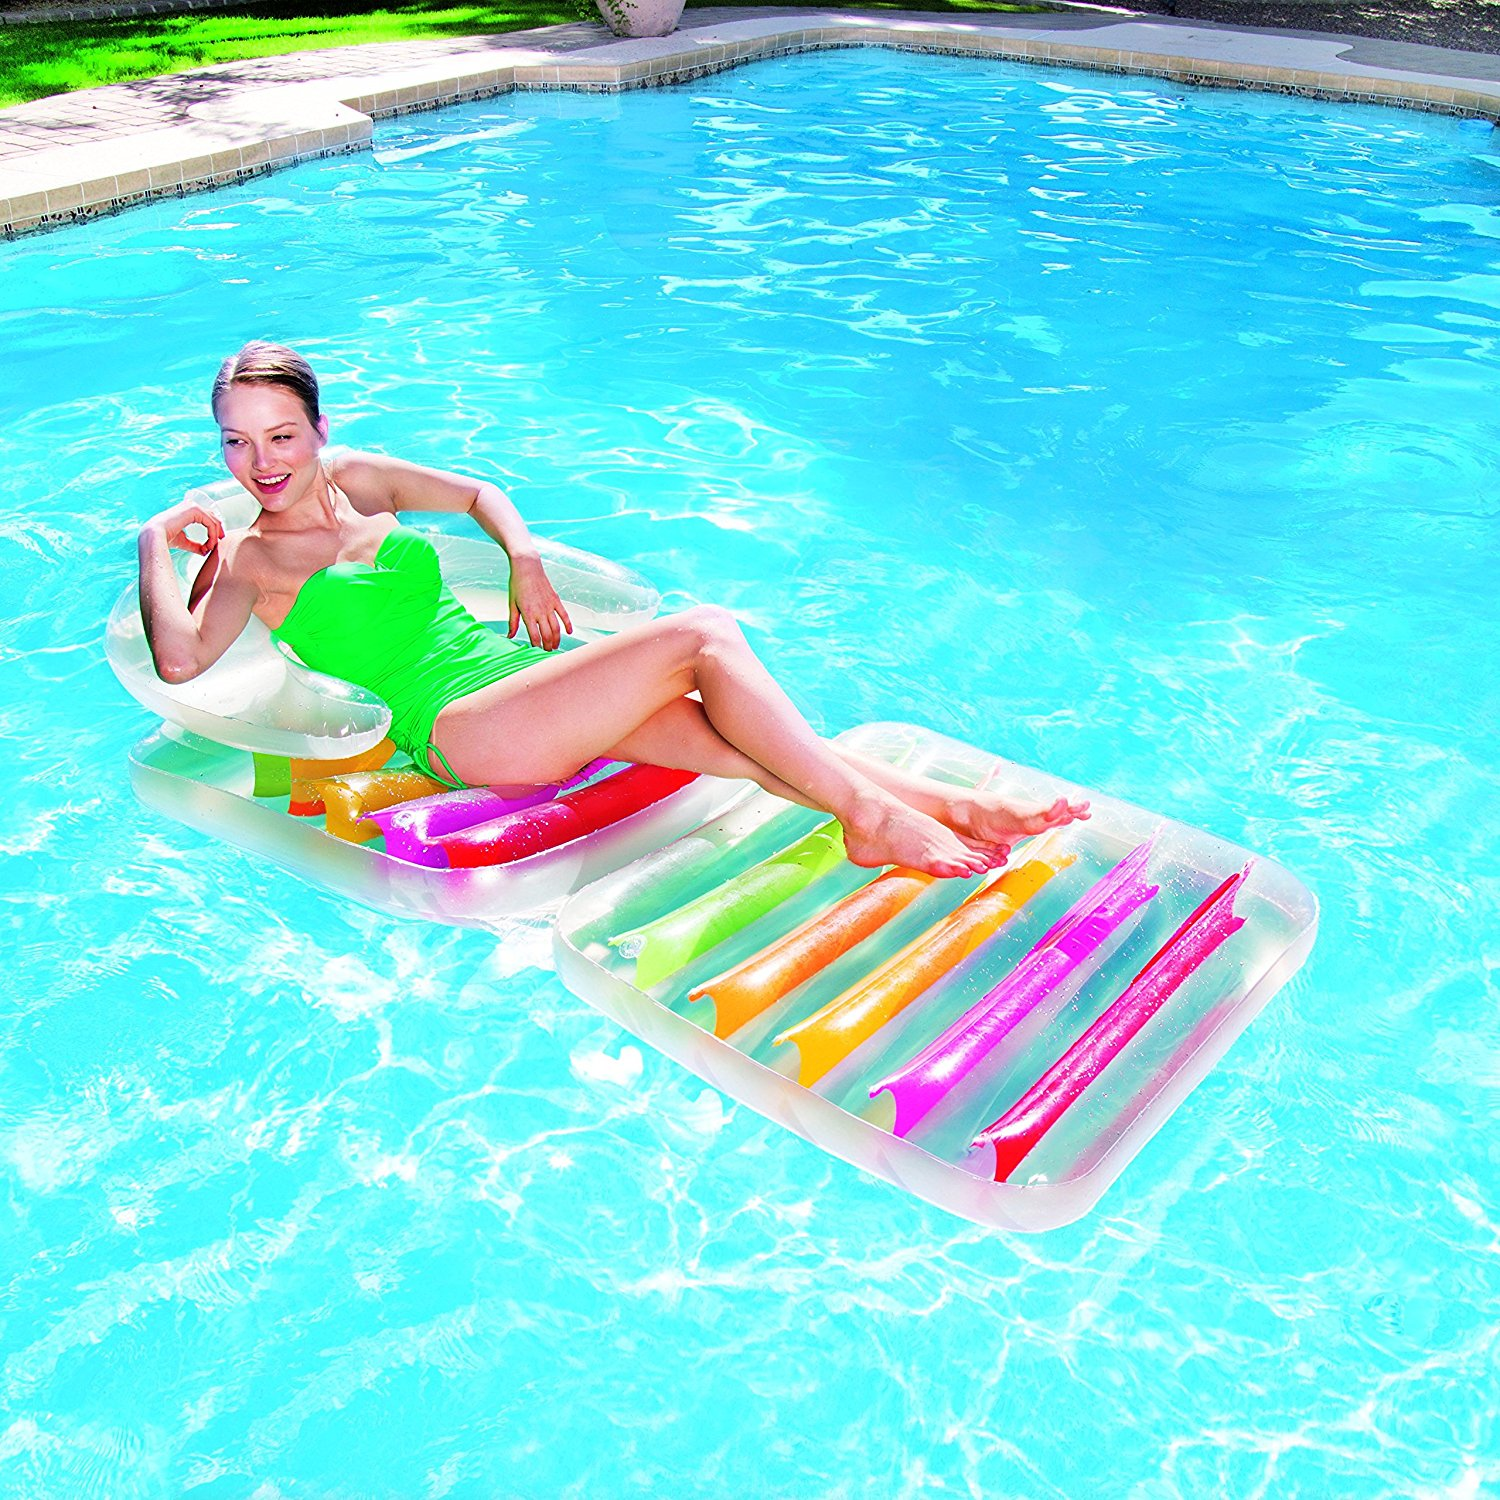 inflatable pool furniture. BESTWAY INFLATABLE LILO SWIMMING POOL AIR LOUNGE DESIGNER FASHION CHAIR LOUNGER Inflatable Pool Furniture E